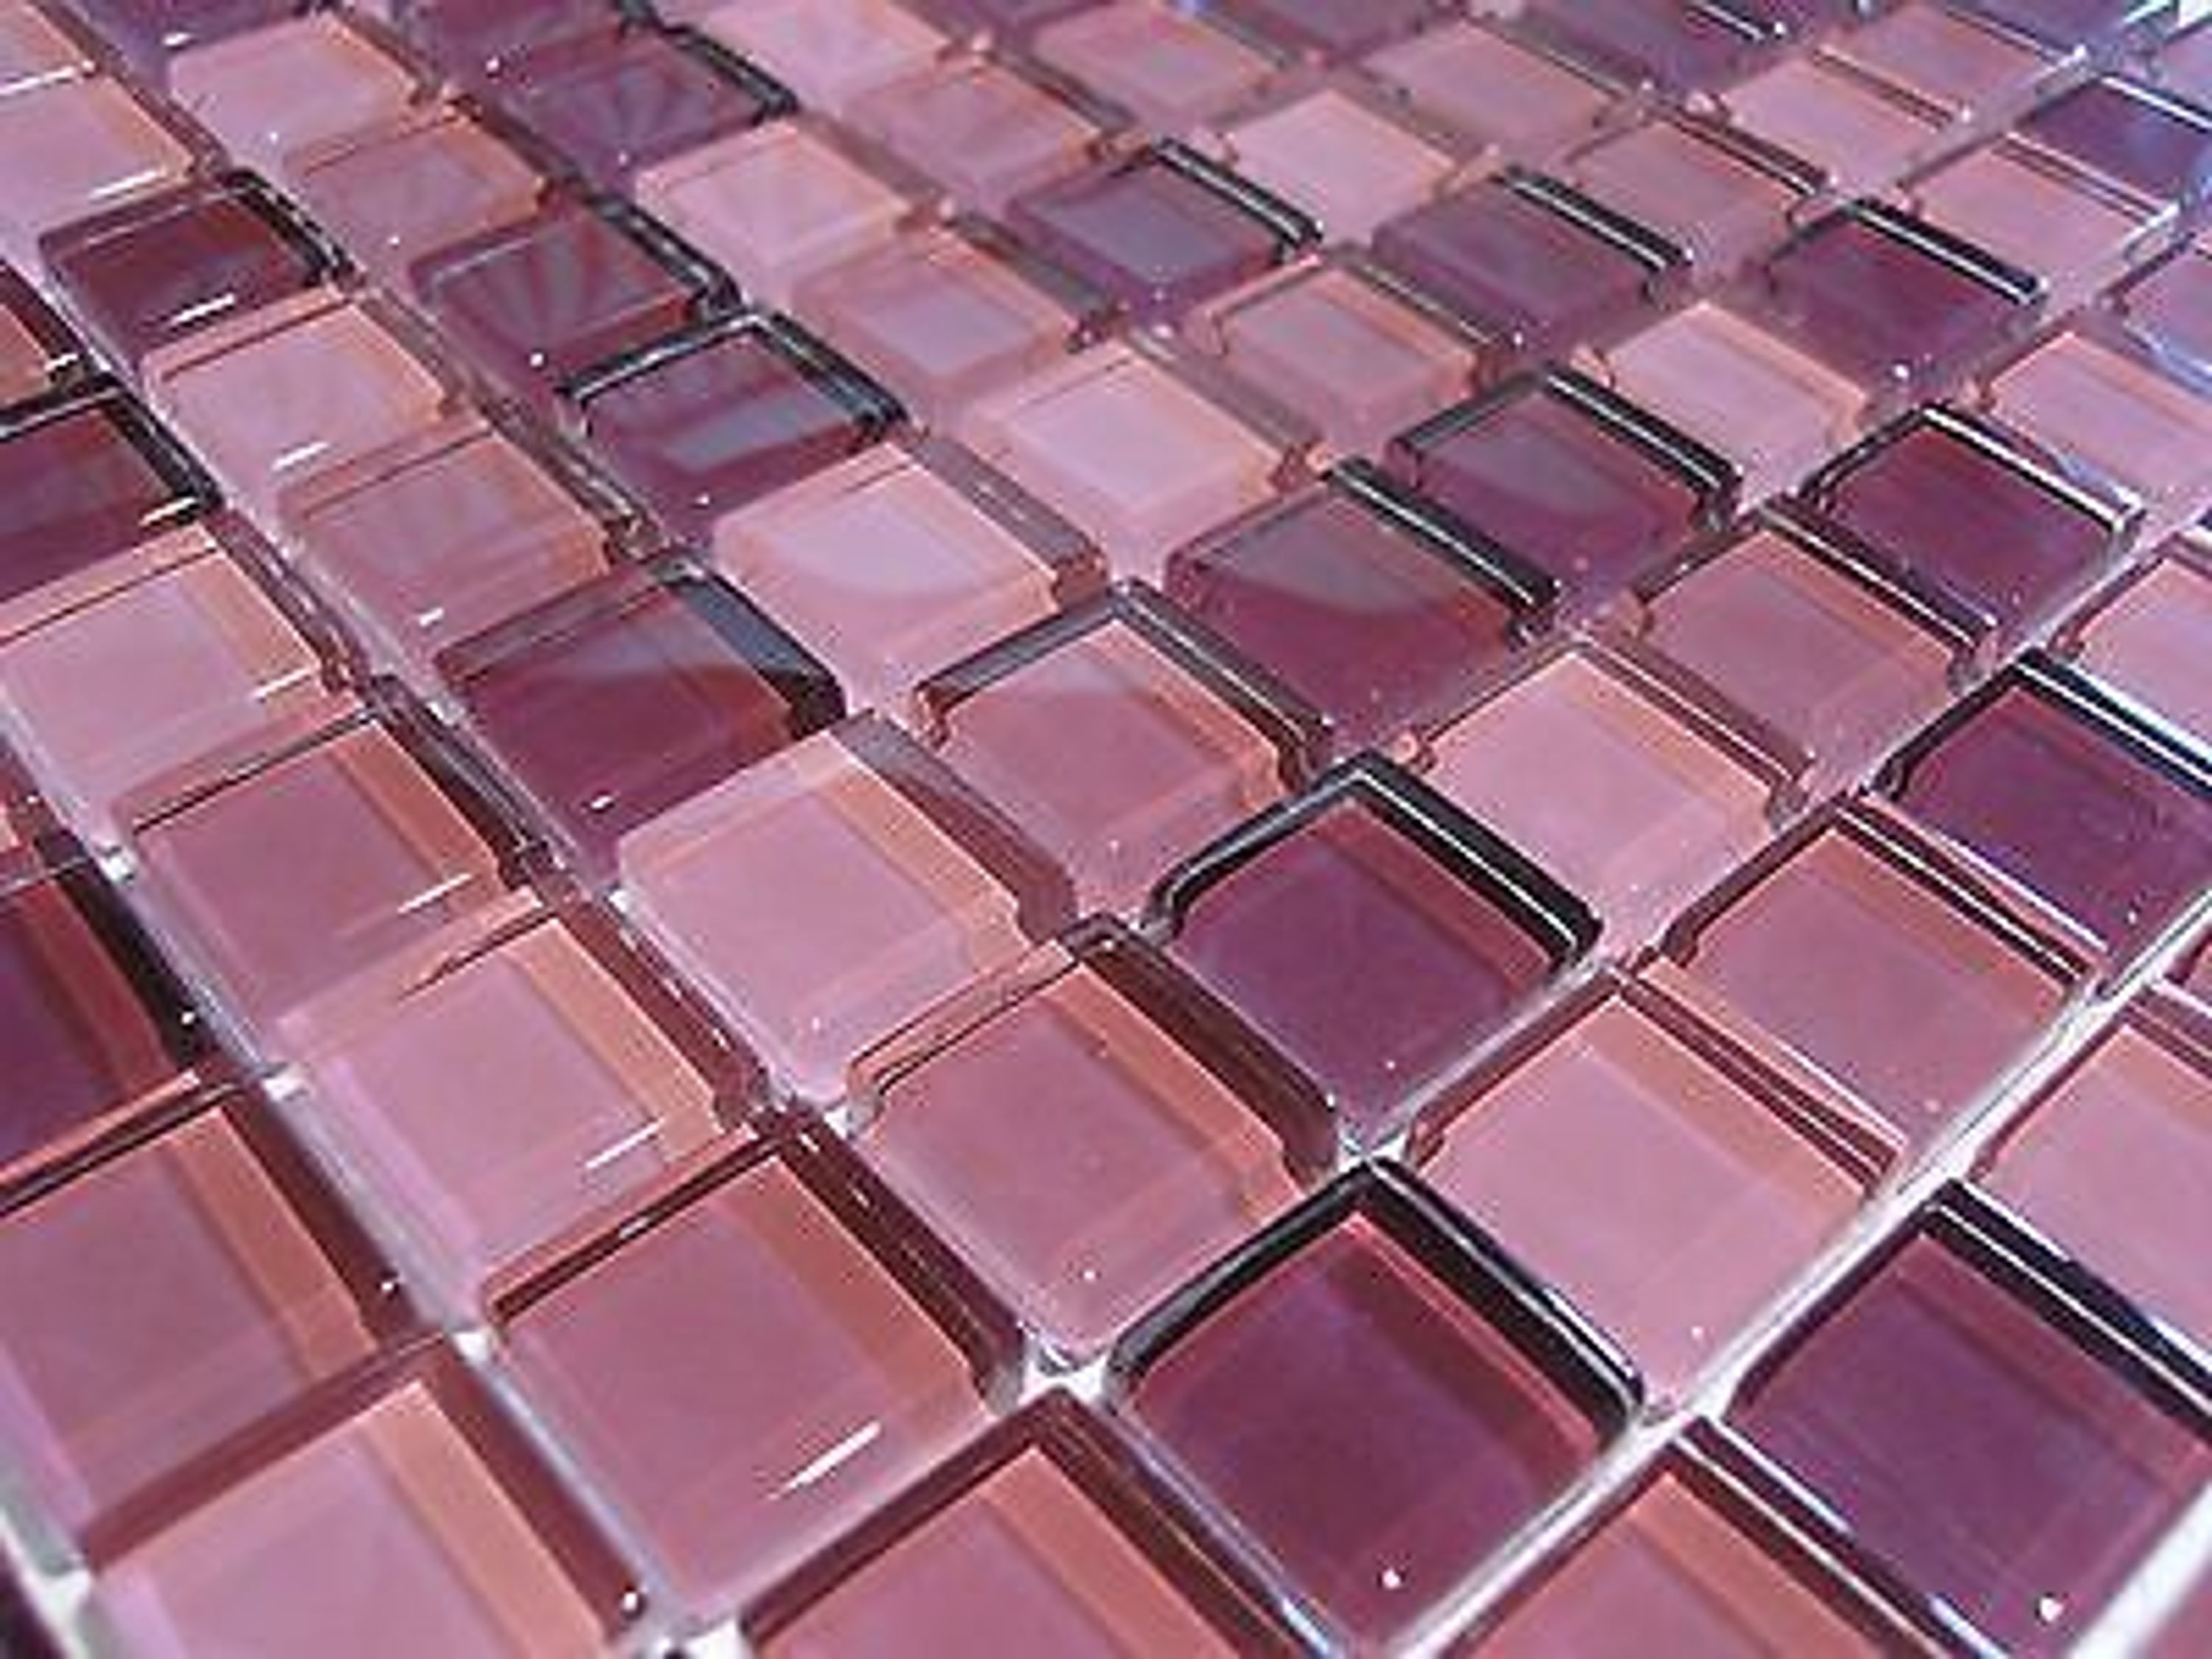 glasmosaik mosaik fliesen klarglas 8mm brombeer pink rose lila bad dusche 1qm kaufen bei. Black Bedroom Furniture Sets. Home Design Ideas